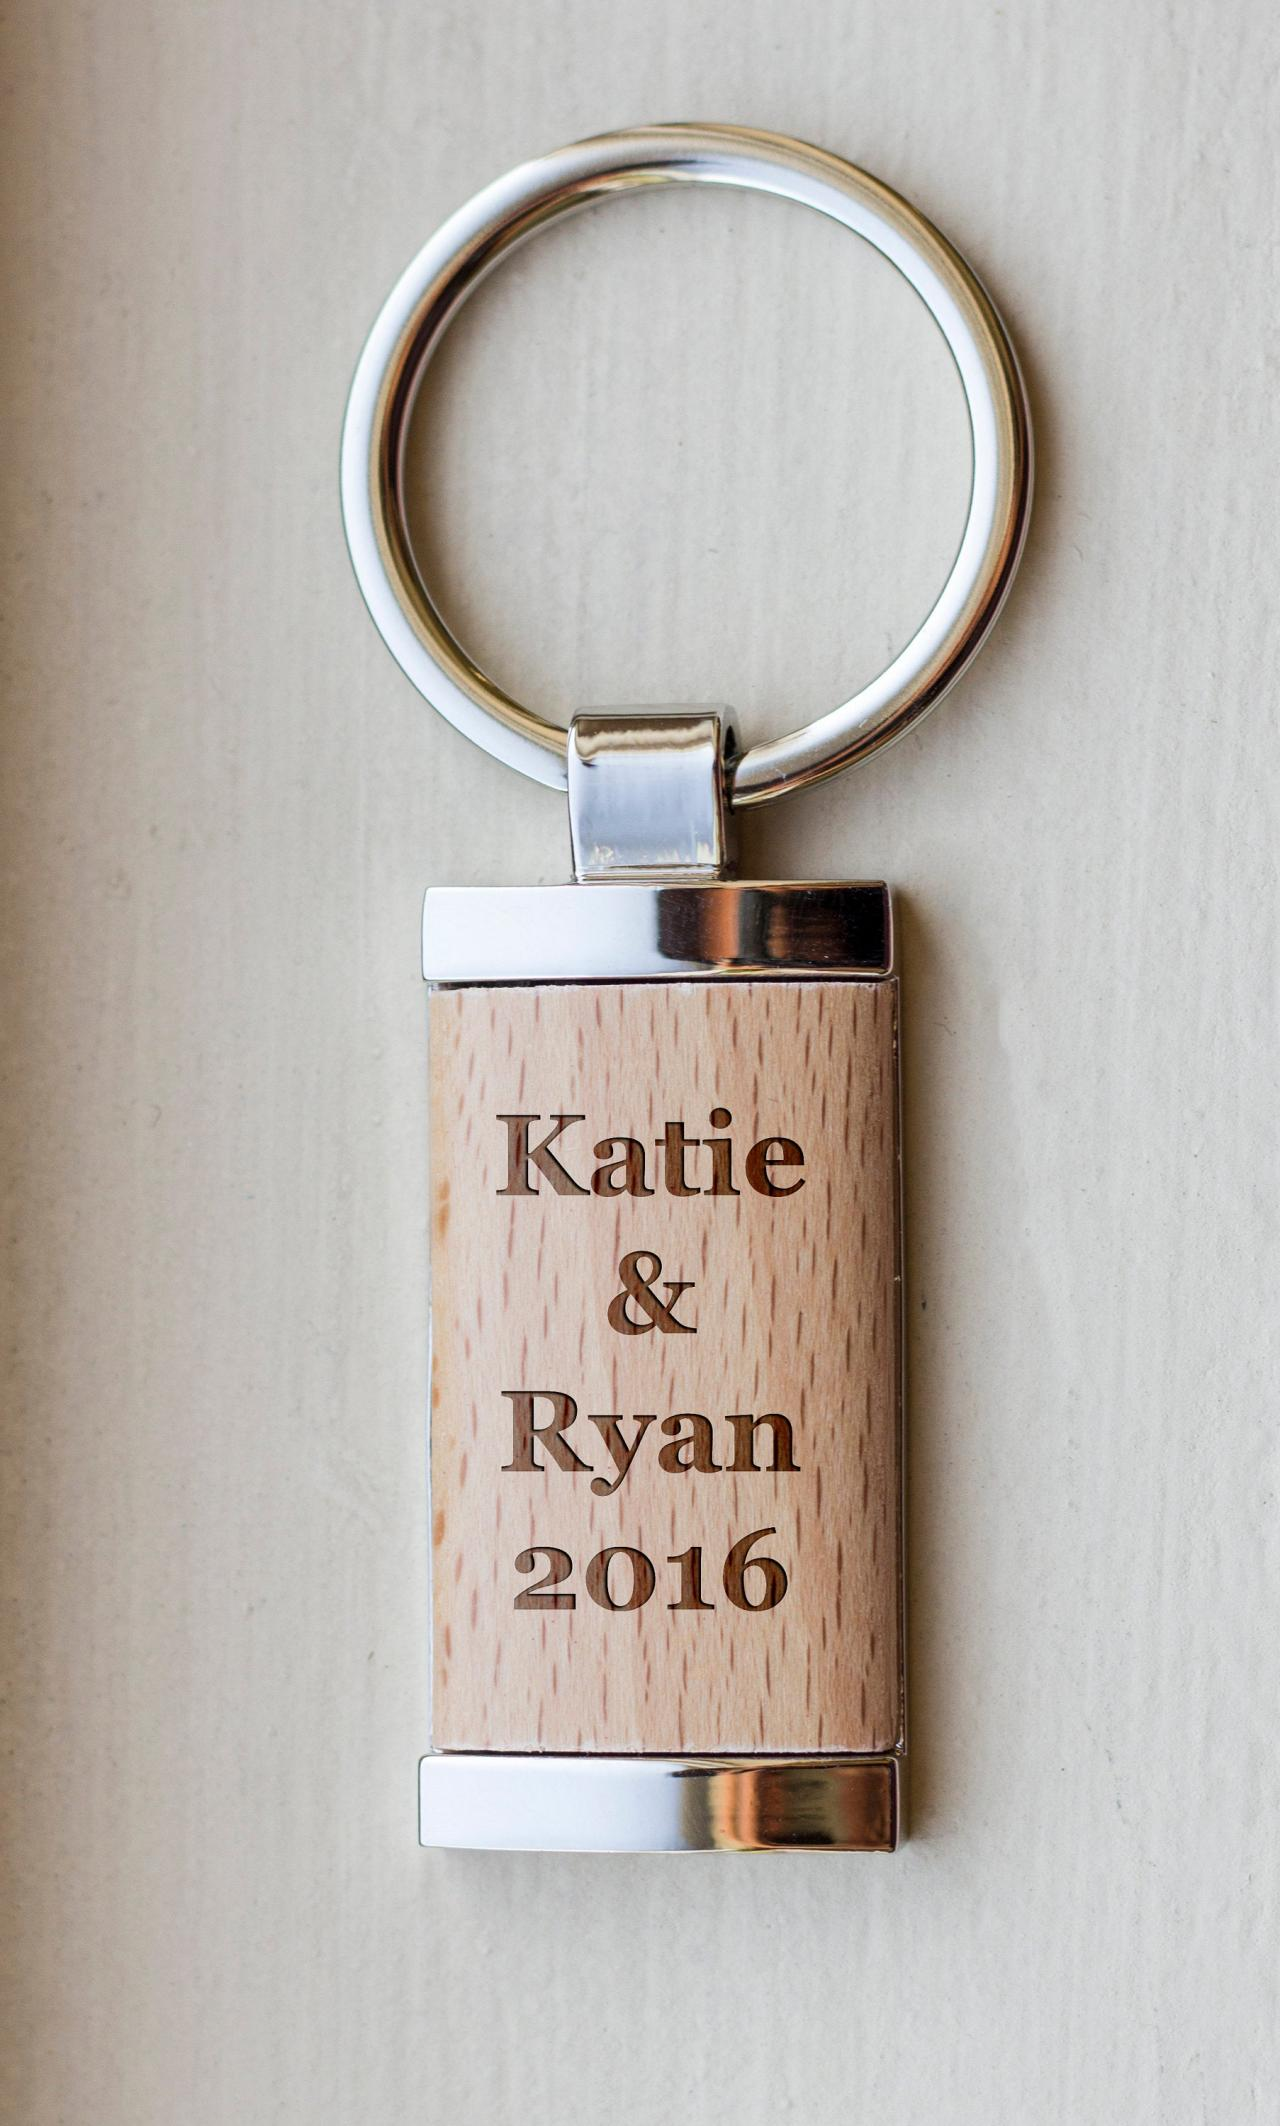 Personalize Key chain, Name key chain, love key chain,custom key chain, wood Engrave key chain, gift for Couple, Gift for newly weds